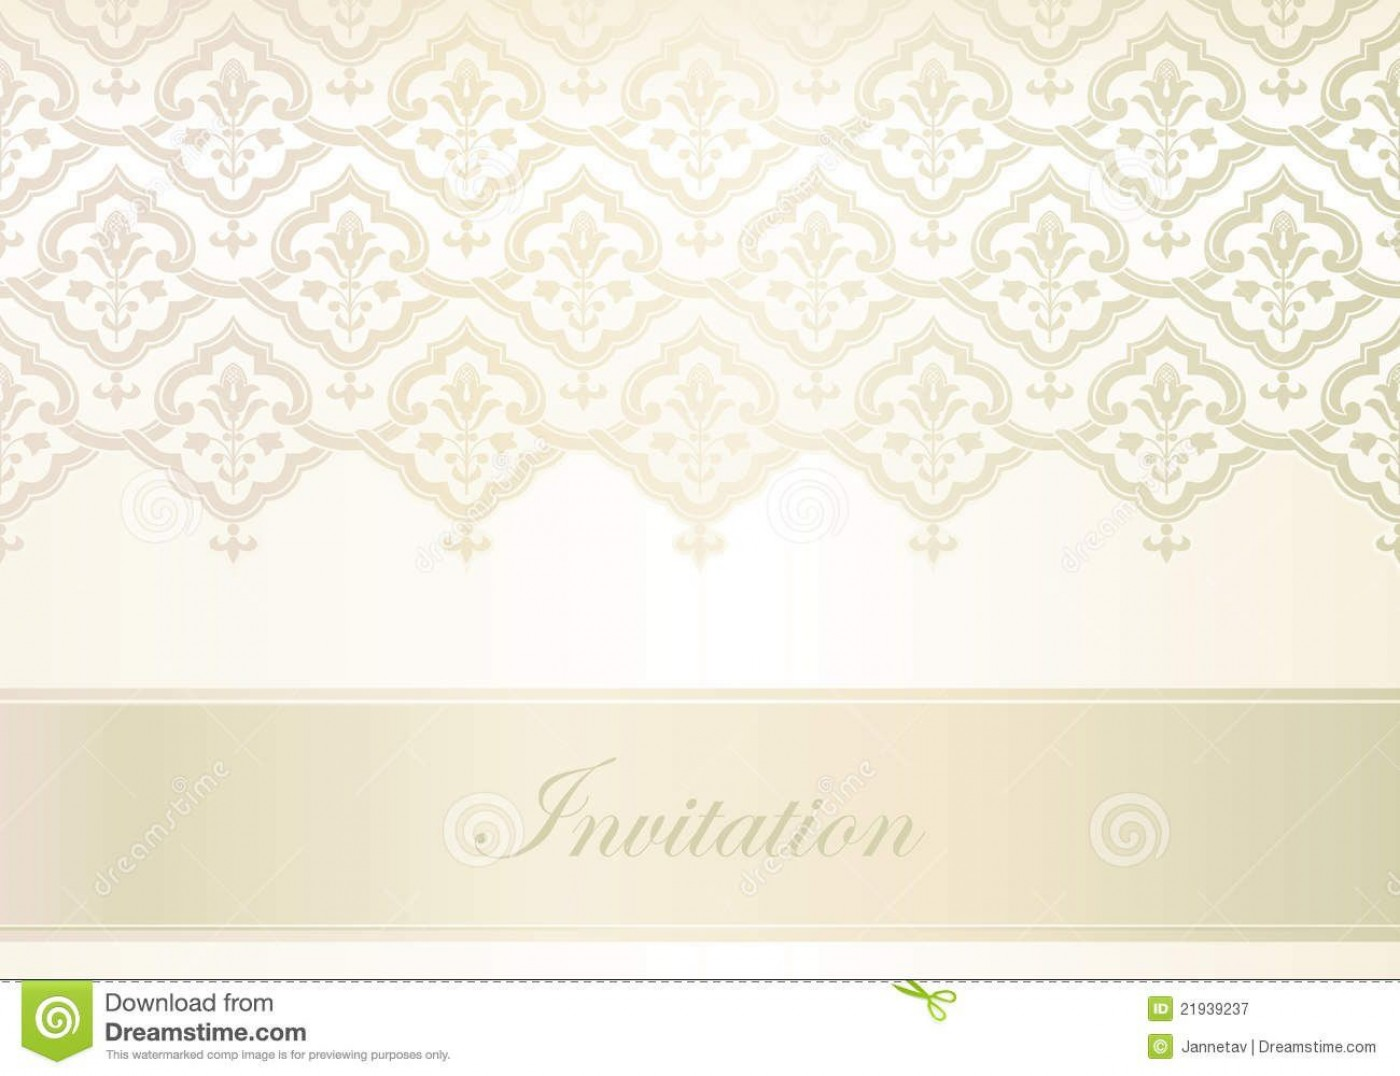 009 Astounding Free Download Invitation Card Format High Definition  Birthday Tamil Marriage In Word1400